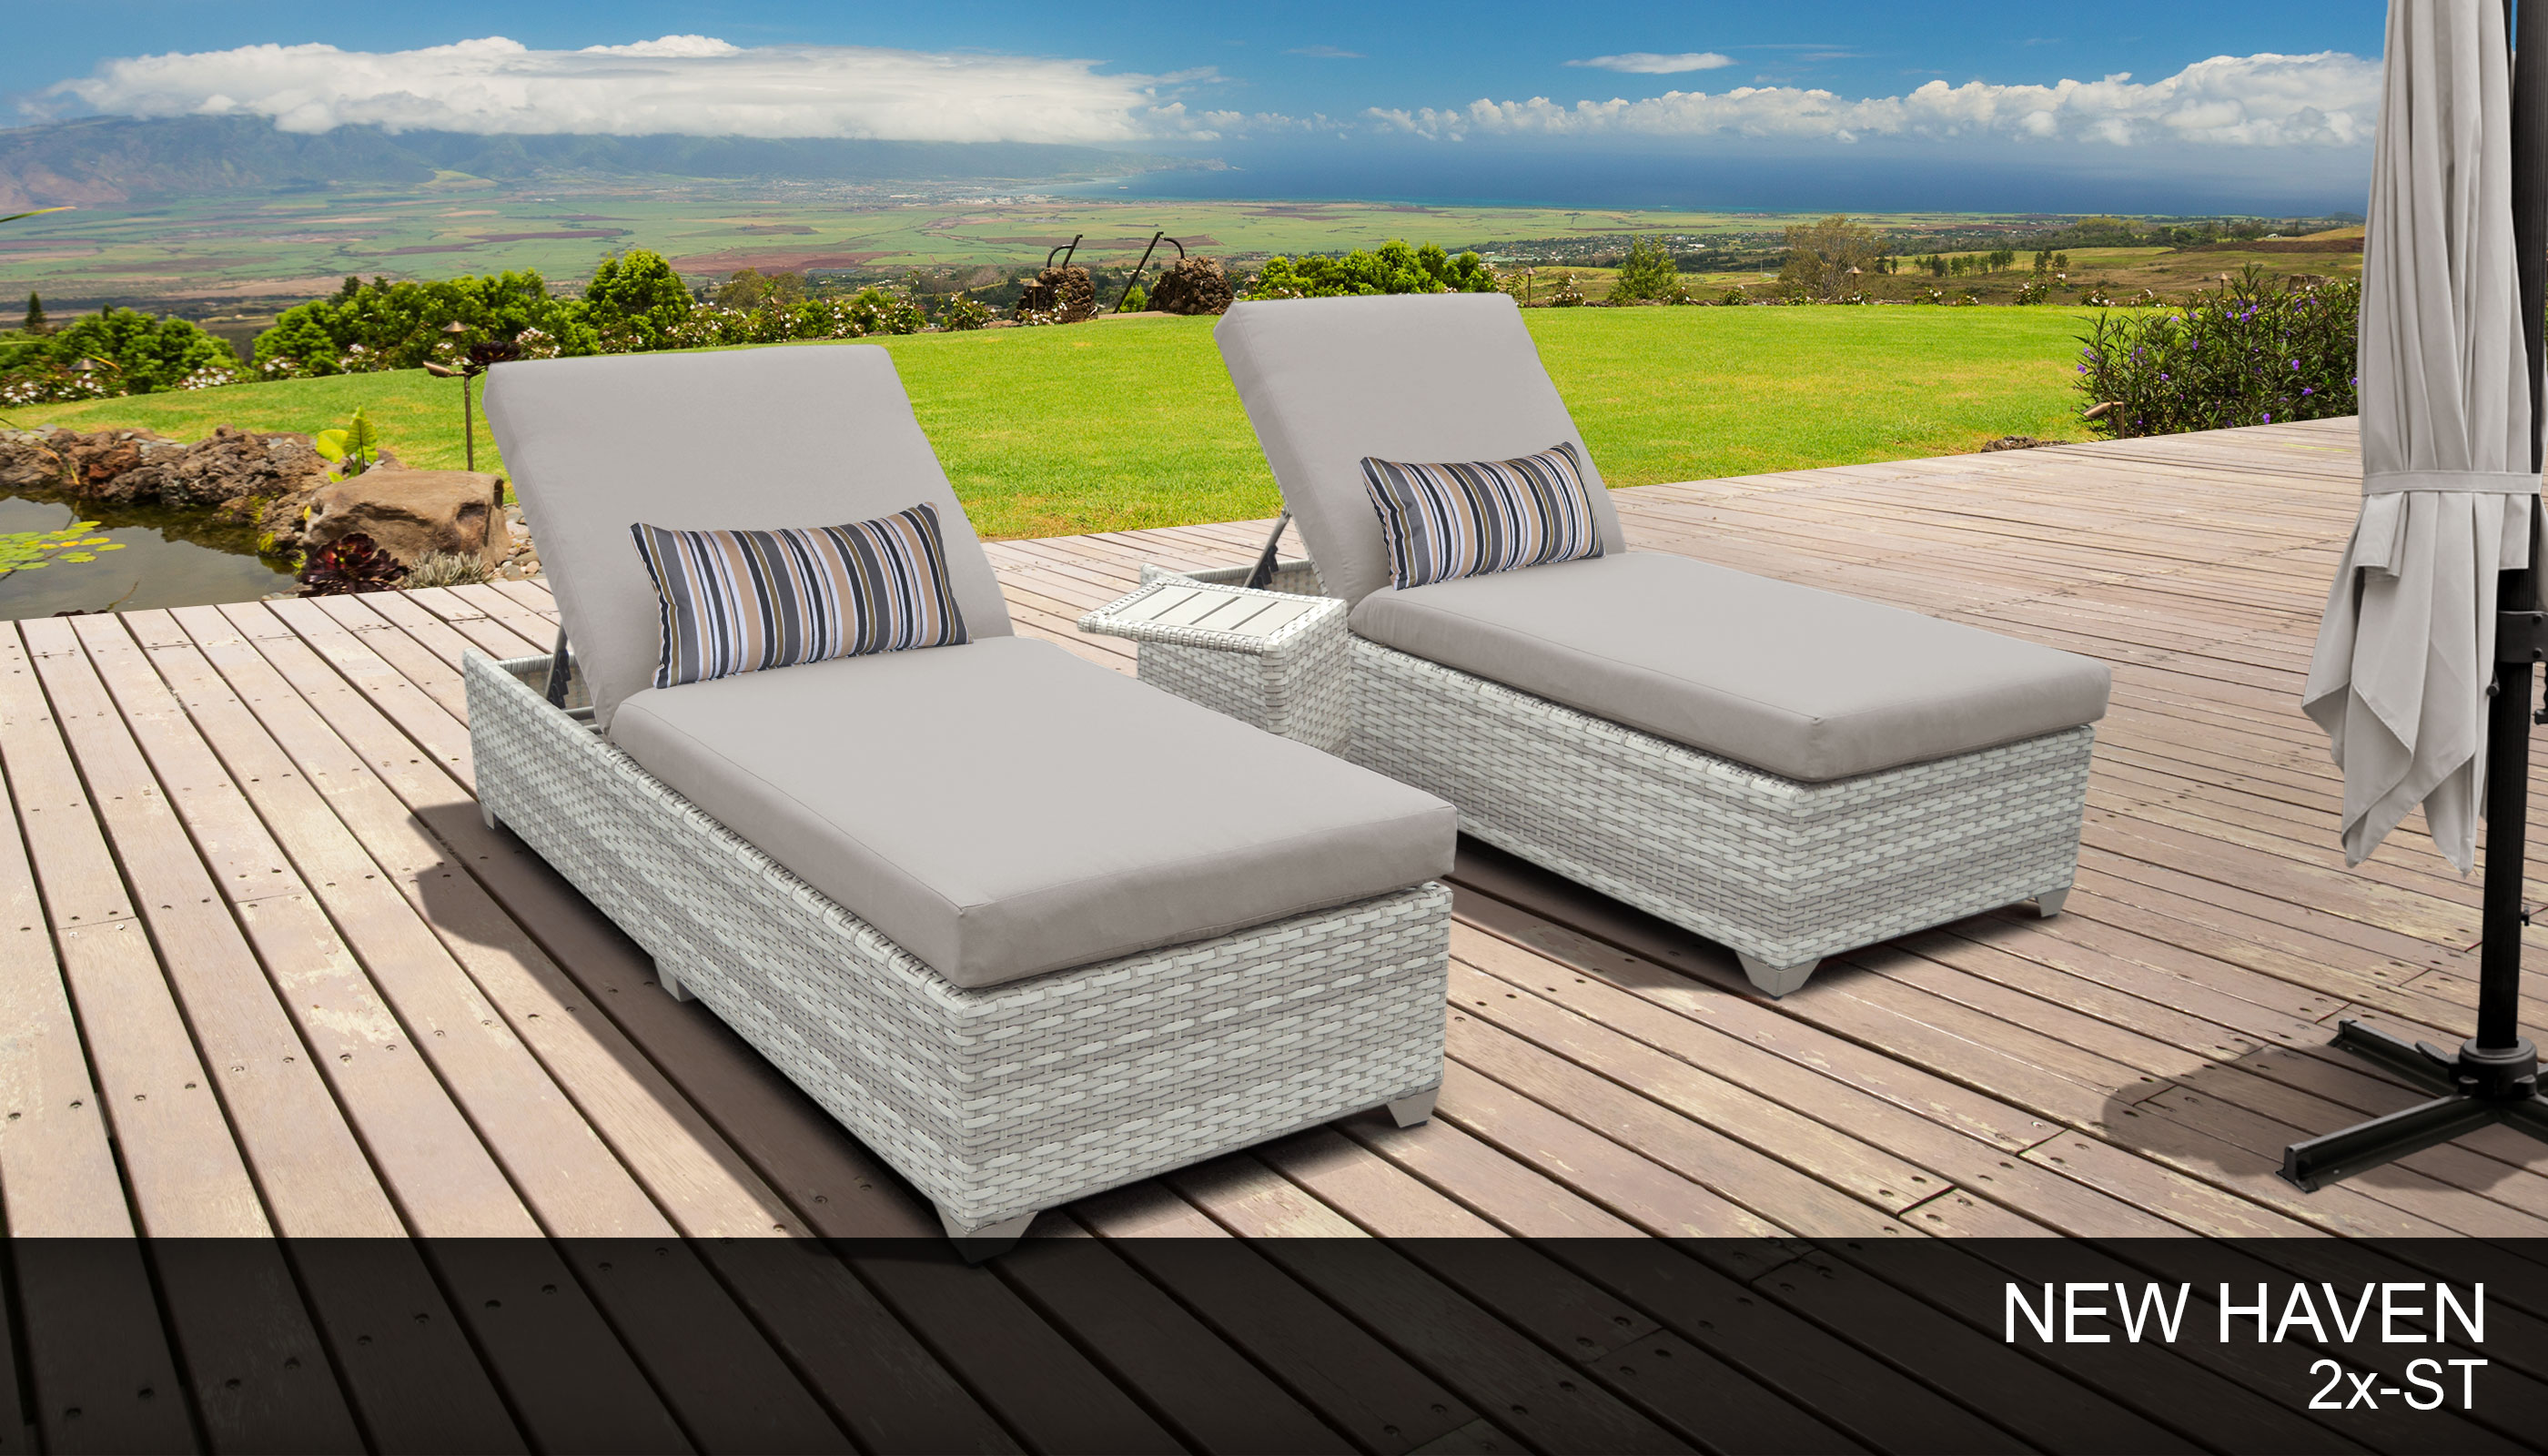 New Haven 12 Piece Outdoor Wicker Patio Furniture Package NEWHAVEN-02a-BWC - Design Furnishings